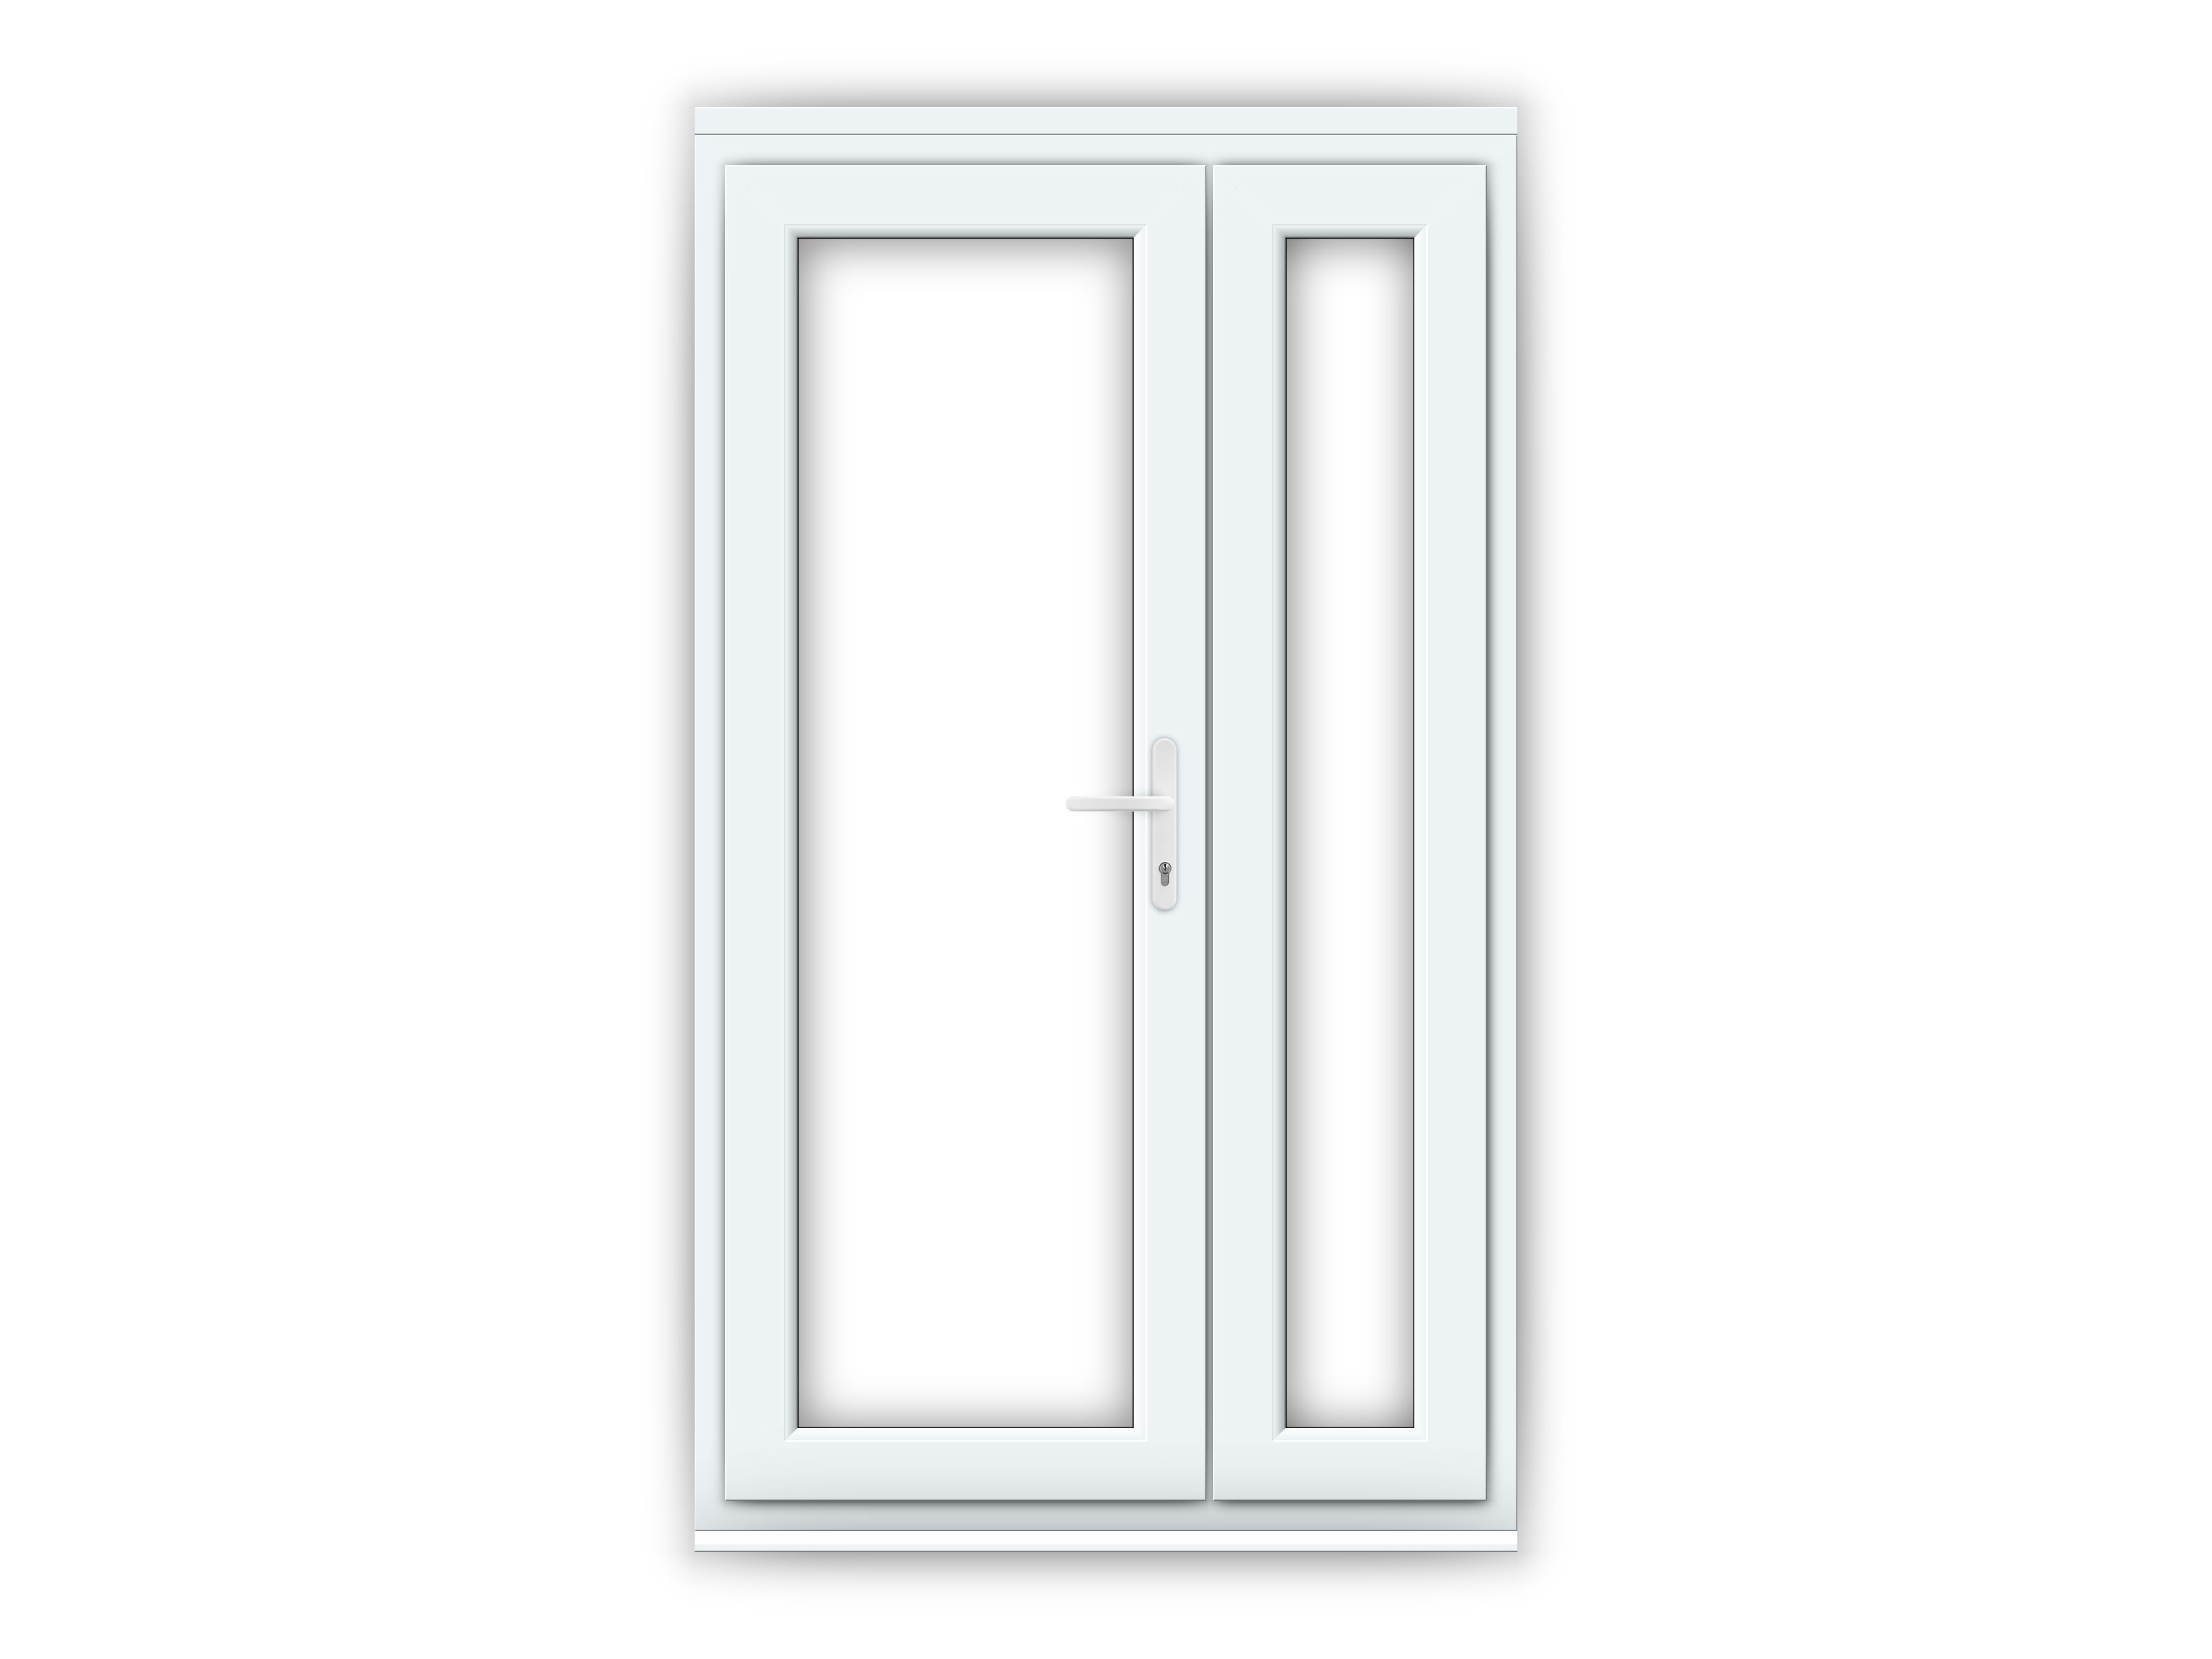 LH uPVC Offset French Doors